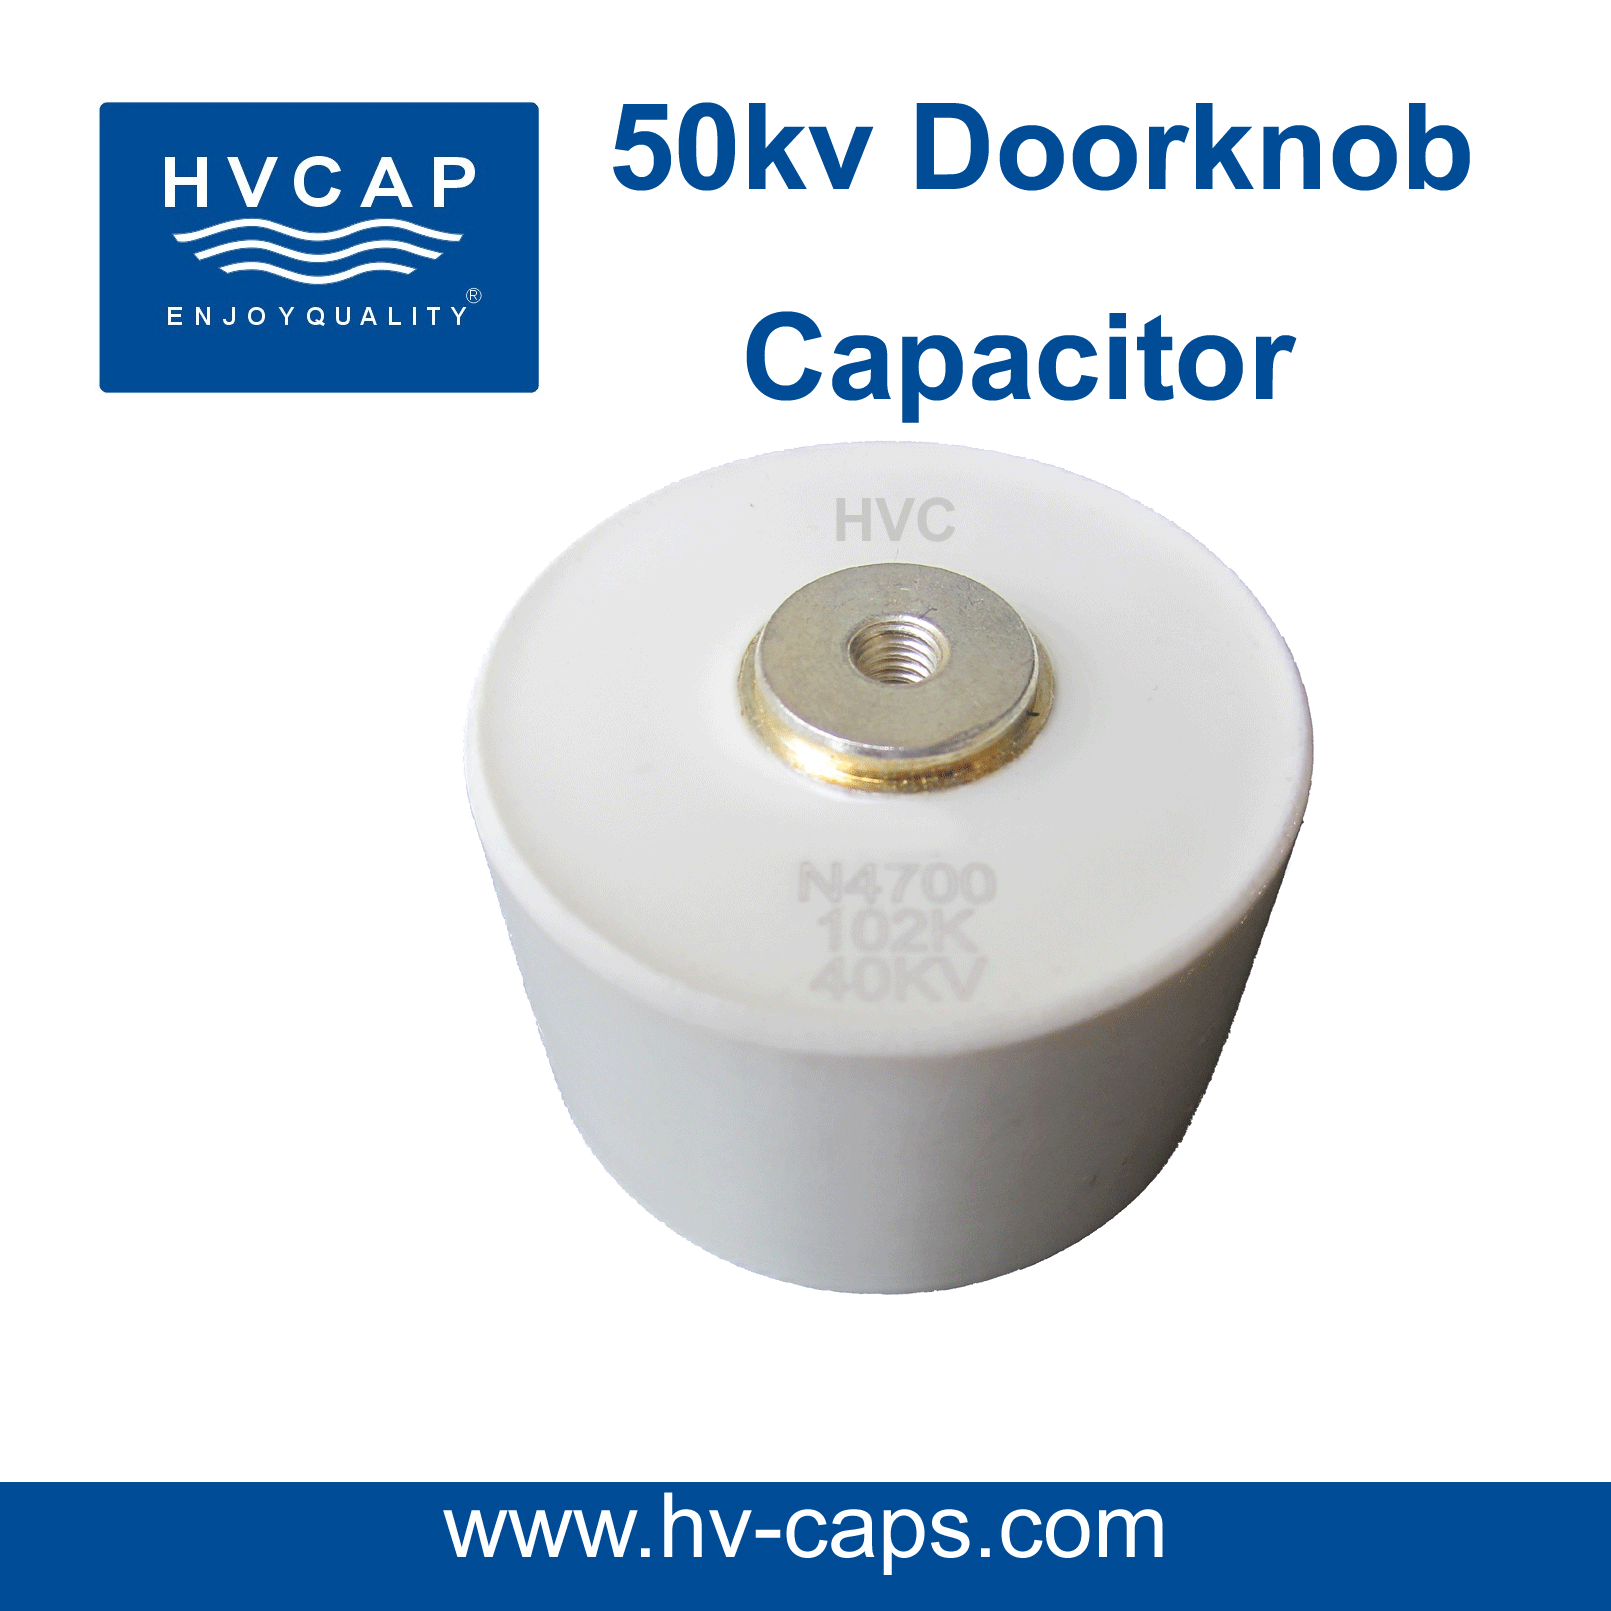 High Voltage Ceramic Doorknob Capacitor 50kv specification.